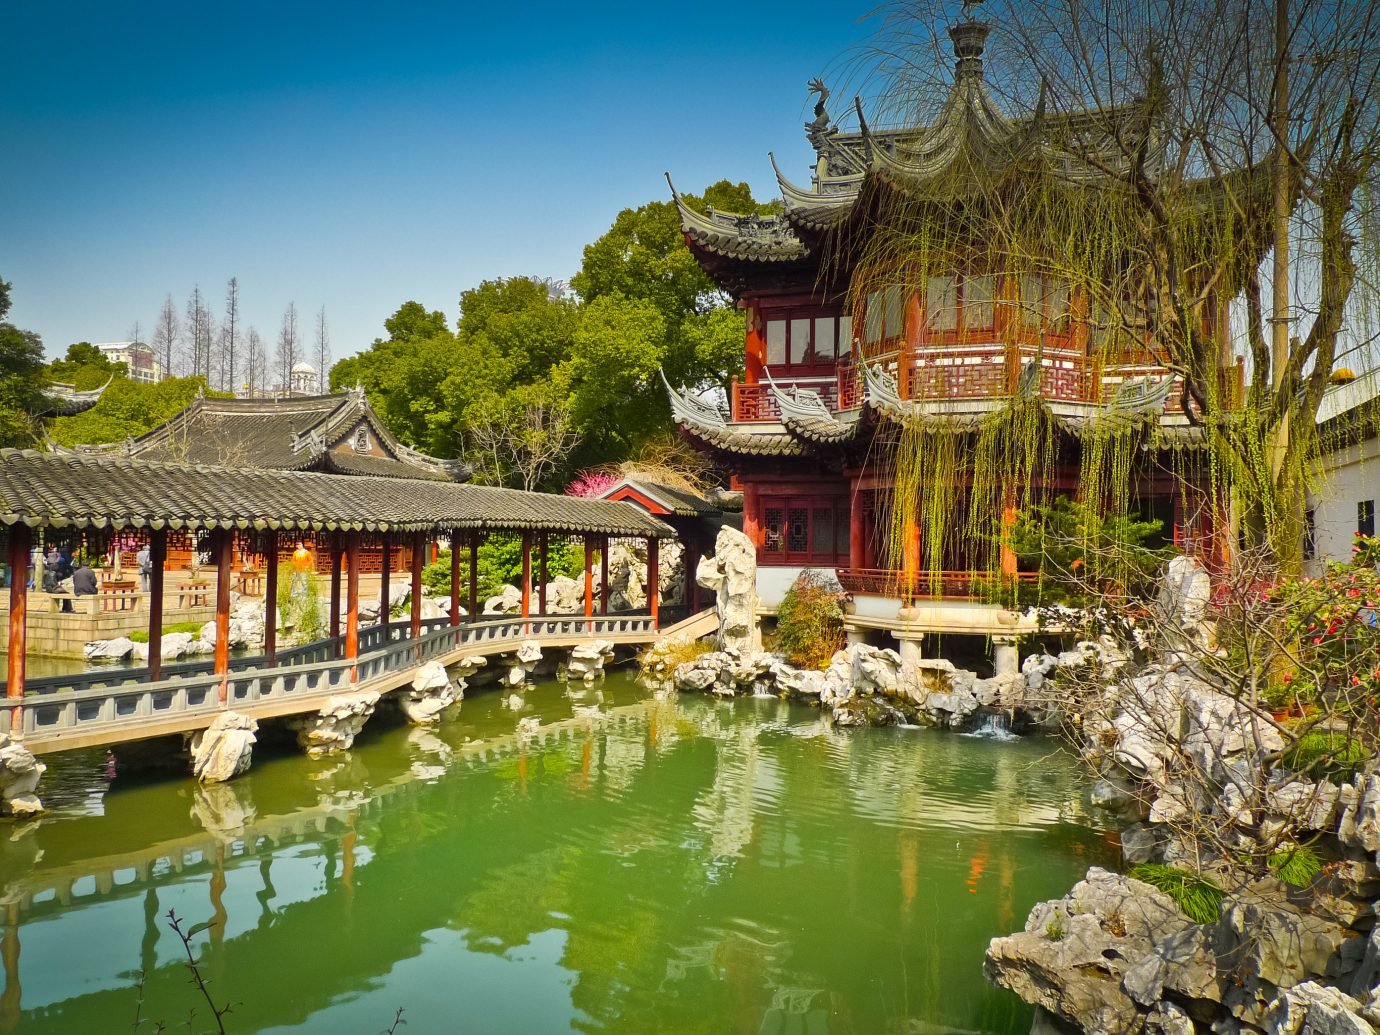 China china rose Shanghai Travel Tips Trip Ideas reflection water Nature plant waterway tree tourist attraction leisure sky tourism pond City real estate Resort landscape Garden flower chinese architecture watercourse